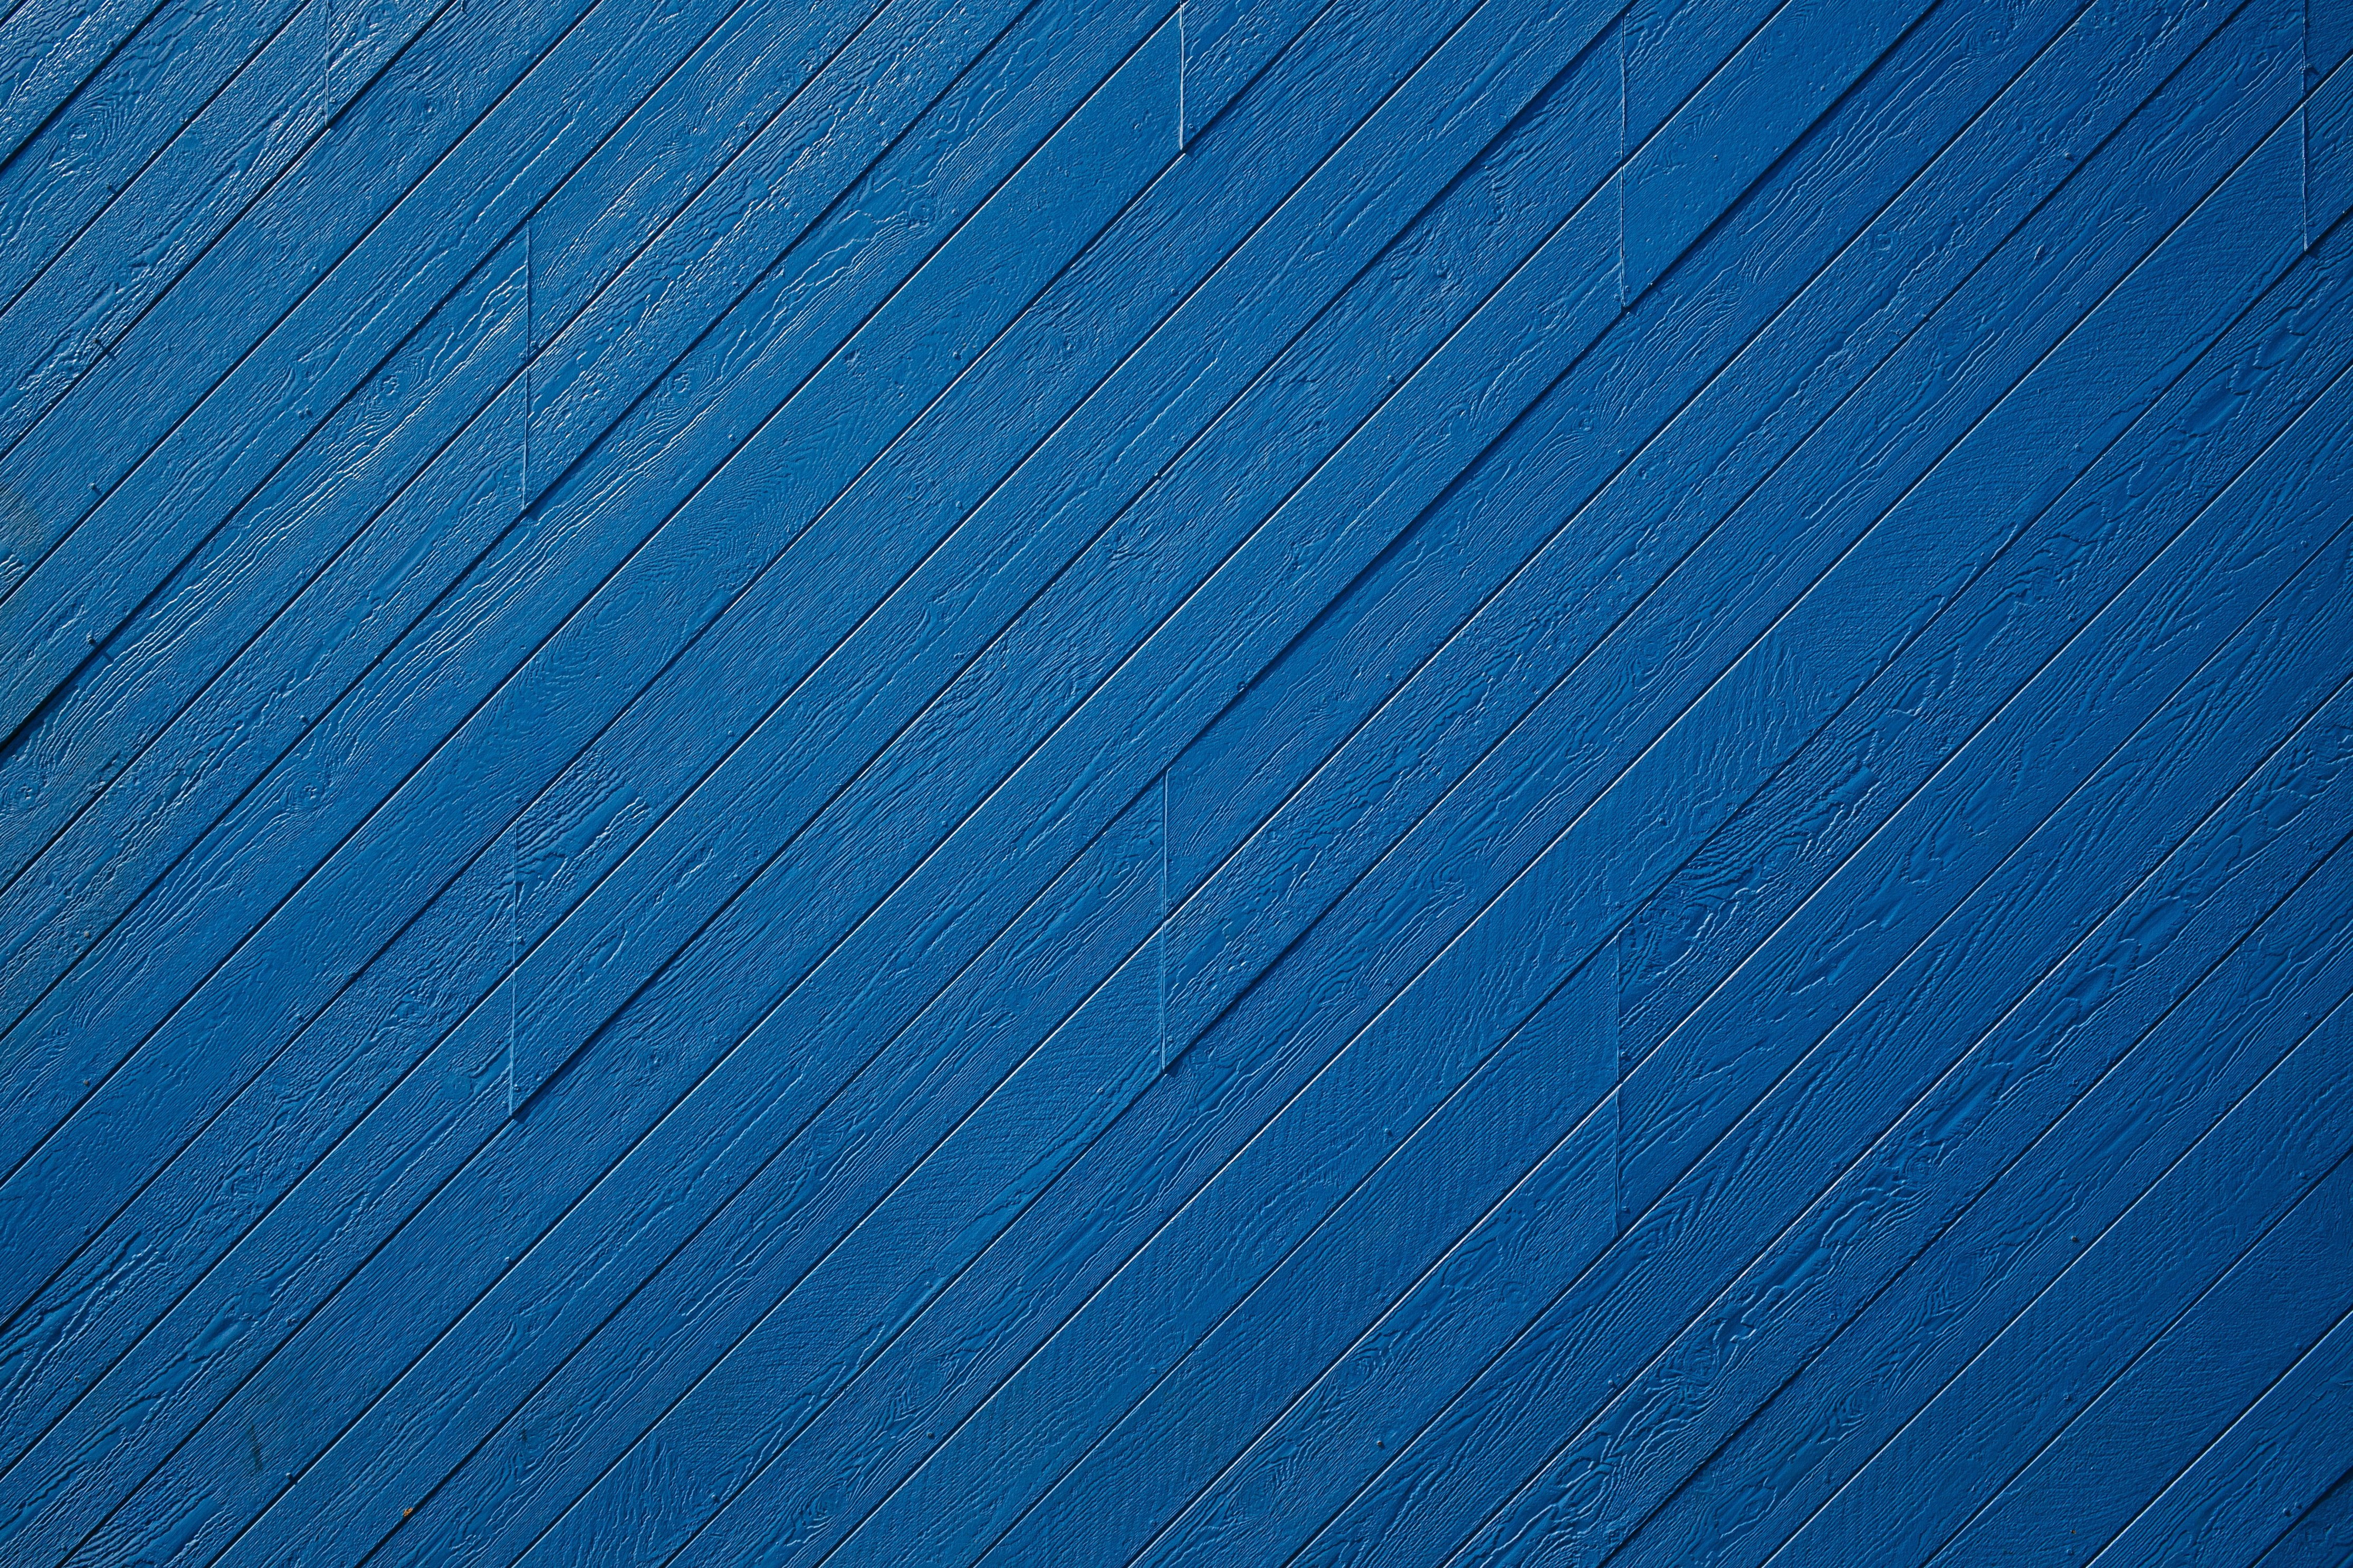 93905 download wallpaper Wall, Wood, Wooden, Texture, Textures, Paint, Obliquely screensavers and pictures for free